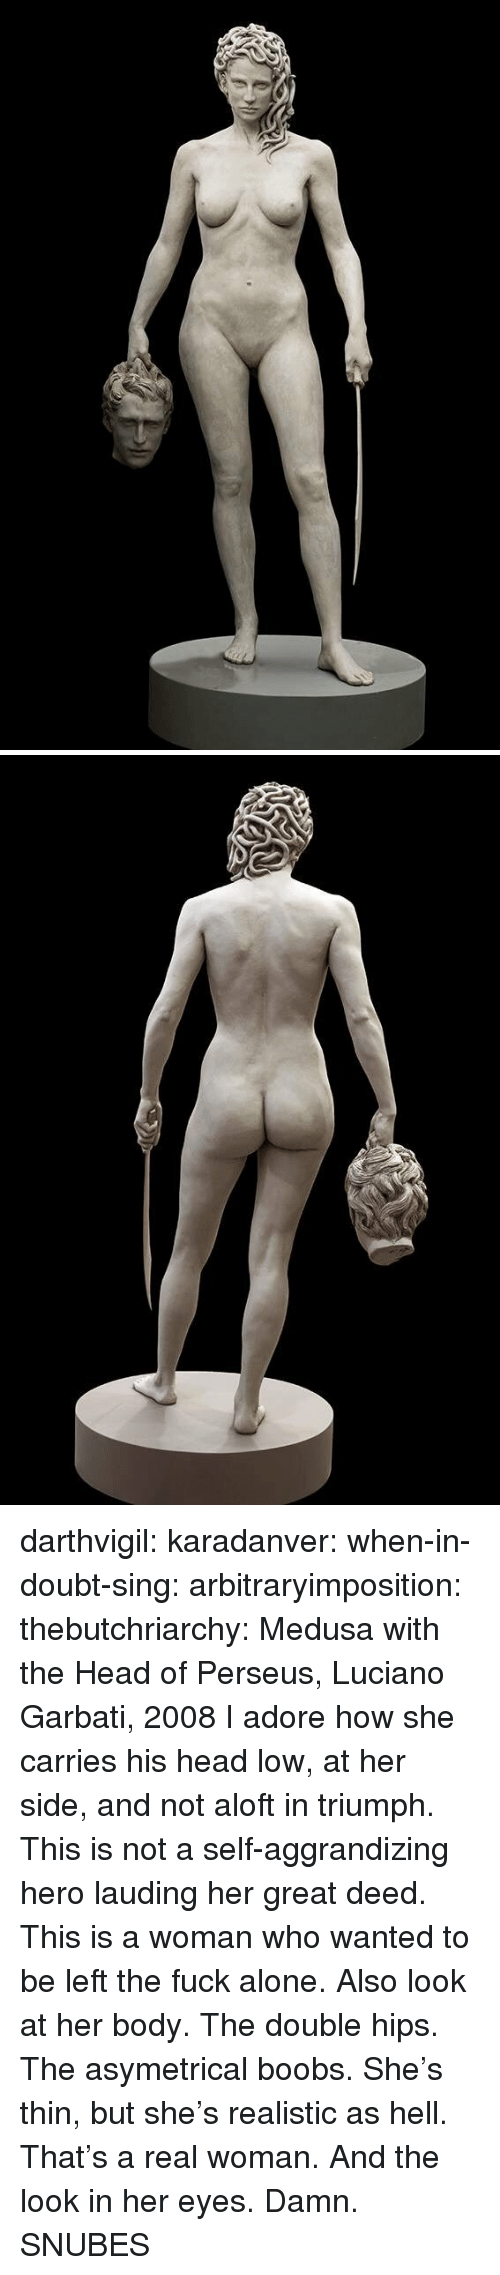 Being Alone, Head, and Tumblr: darthvigil: karadanver:  when-in-doubt-sing:  arbitraryimposition:  thebutchriarchy: Medusa with the Head of Perseus, Luciano Garbati, 2008 I adore how she carries his head low, at her side, and not aloft in triumph.  This is not a self-aggrandizing hero lauding her great deed. This is a woman who wanted to be left the fuck alone.   Also look at her body. The double hips. The asymetrical boobs. She's thin, but she's realistic as hell. That's a real woman.  And the look in her eyes. Damn.      SNUBES